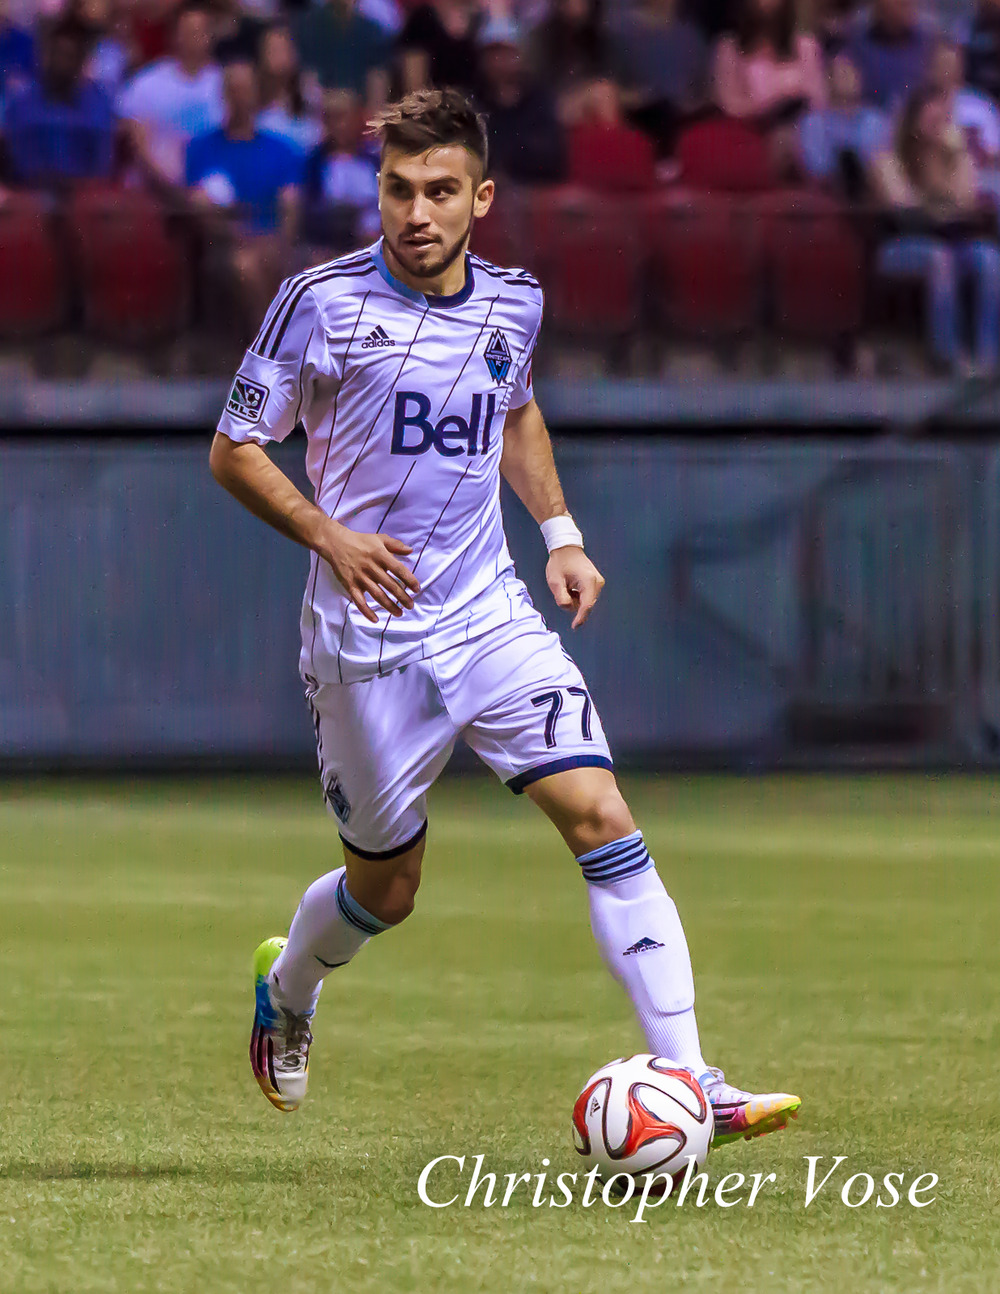 Pedro Morales wore the captain's armband for the second game in a row. Could he be Vancouver's next permanent captain? We think so.